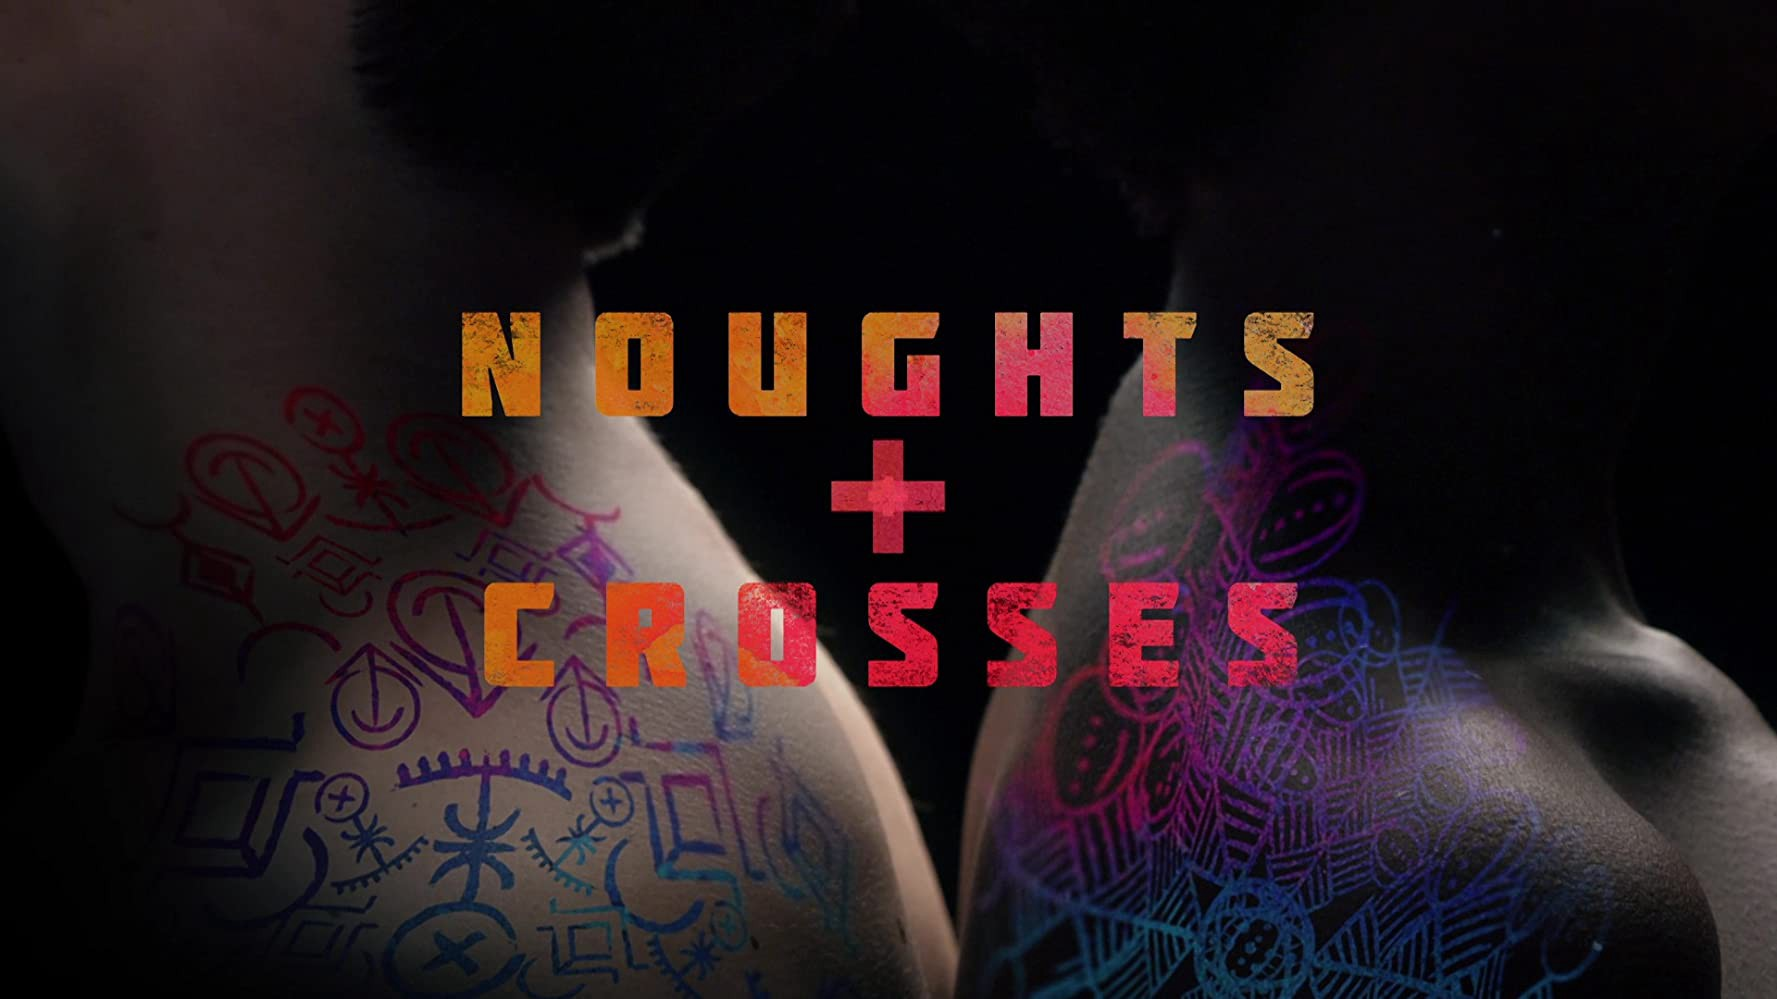 Title card from Noughts + Crosses (Koby Adom, 2020)